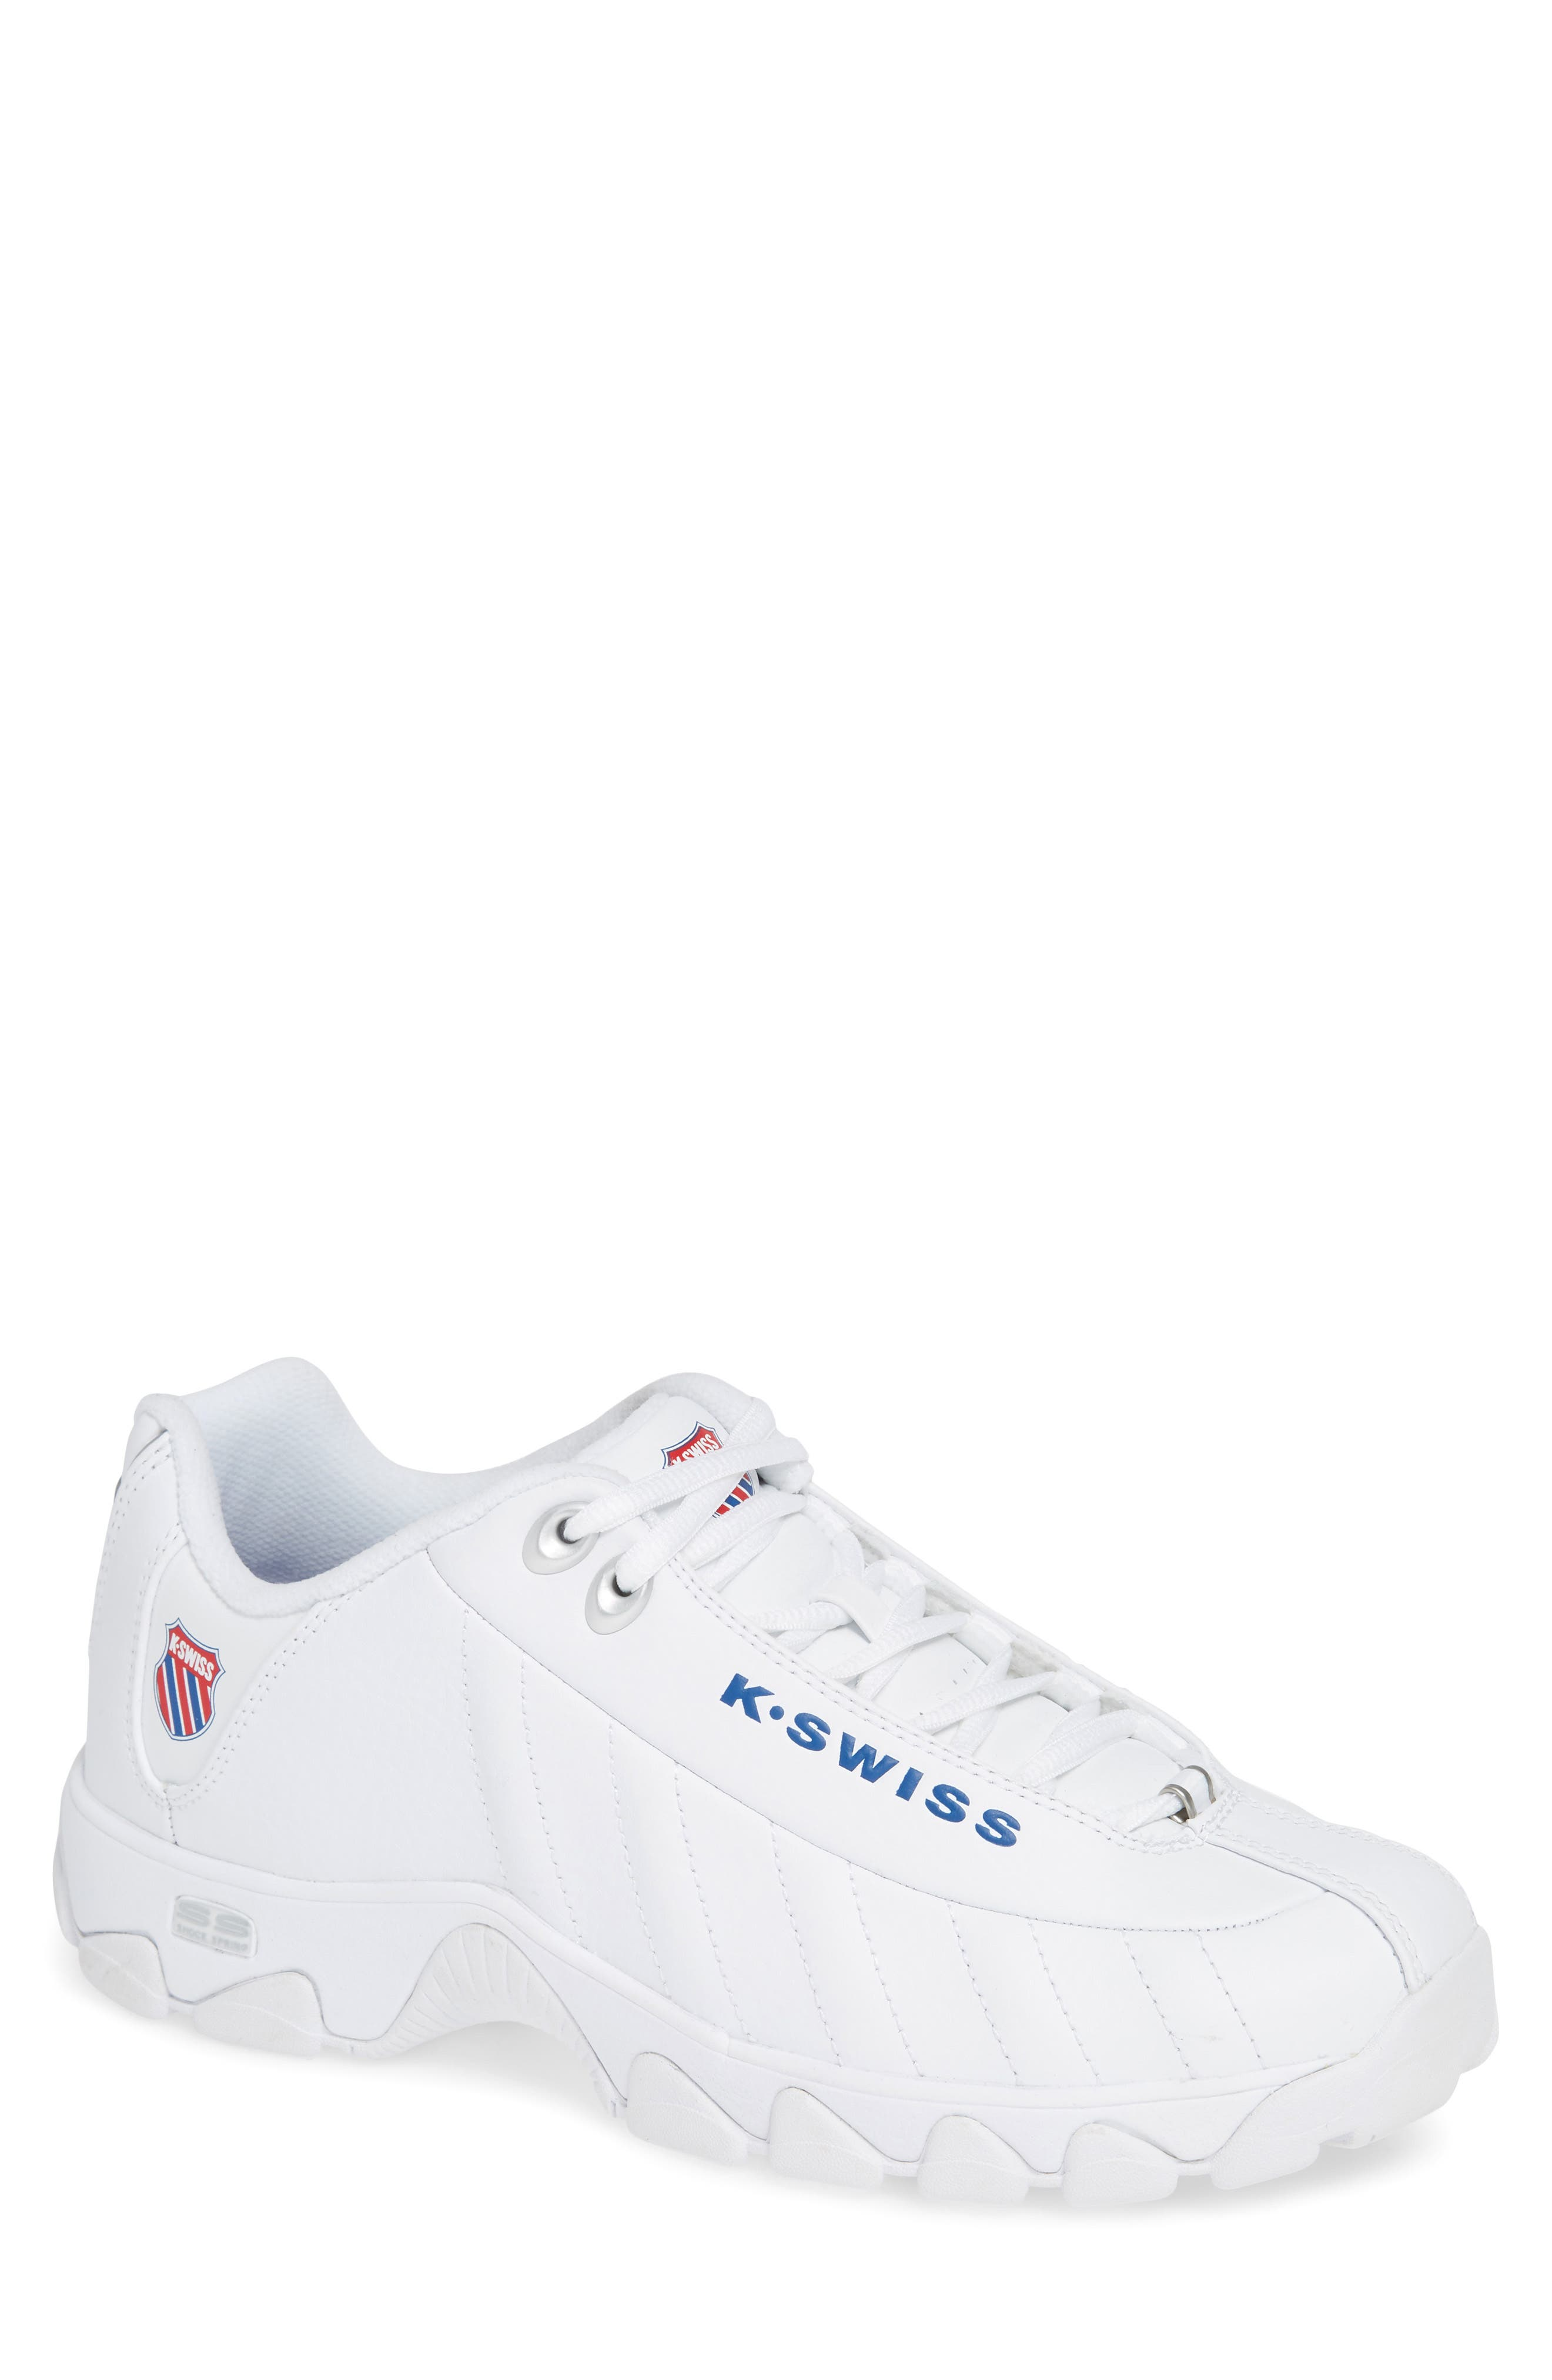 K-SWISS St-329 Heritage Sneaker in White/ Classic Blue/ Red